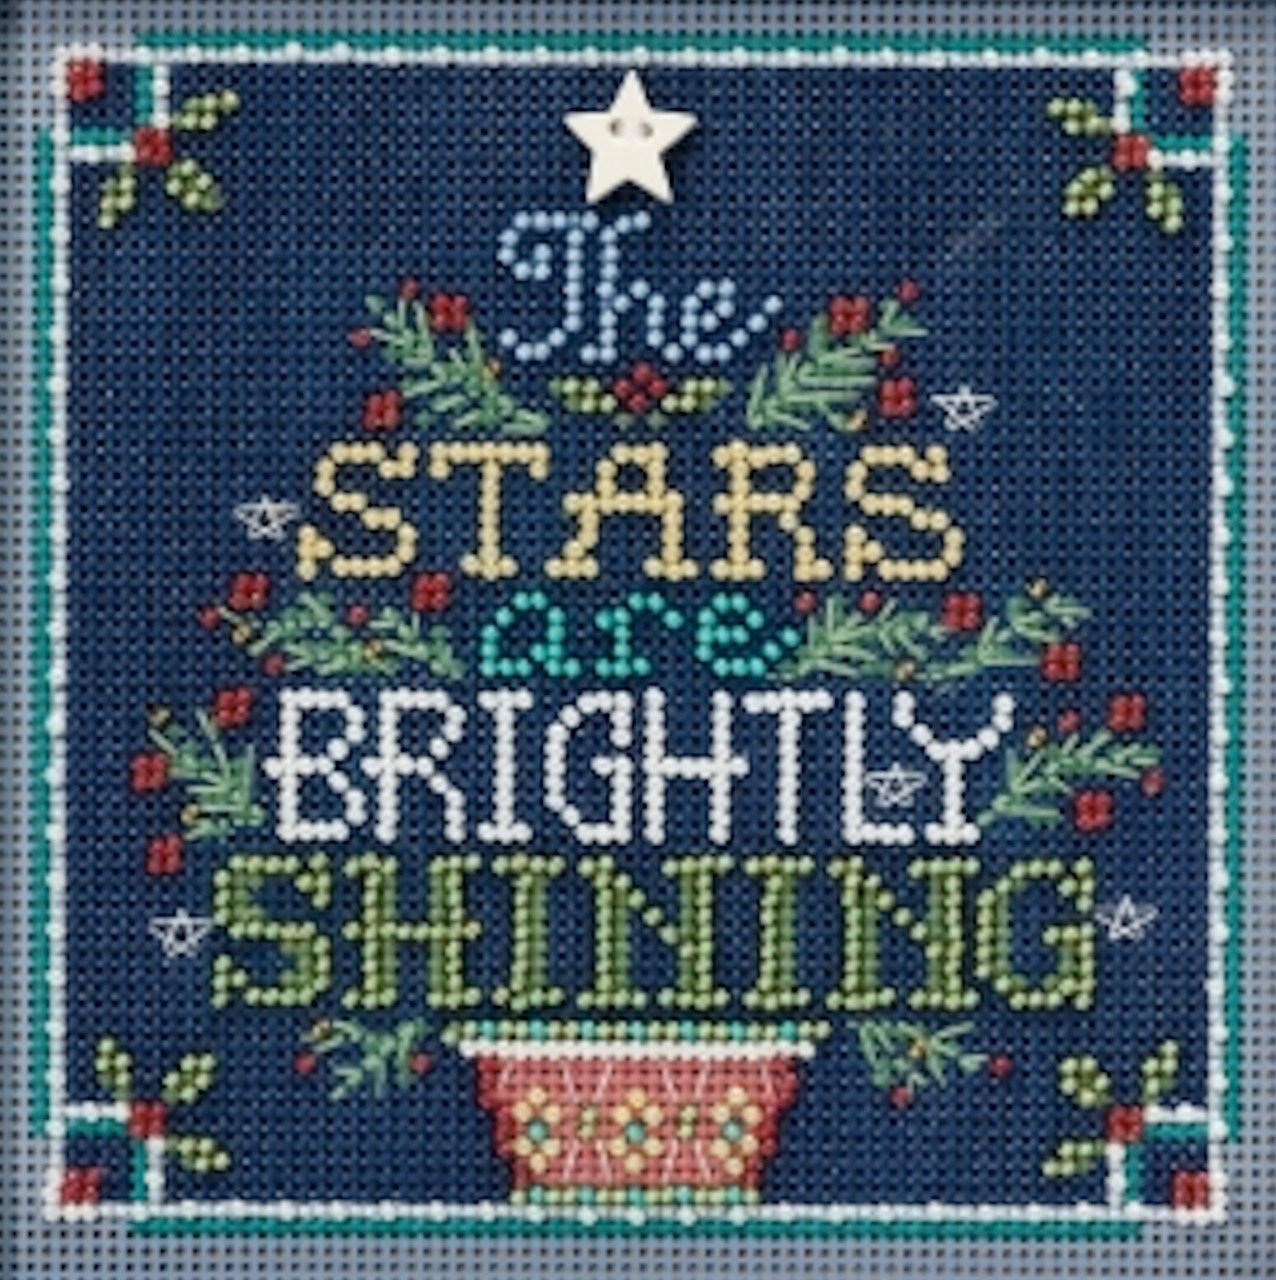 Brightly Shining Cross Stitch Kit Mill Hill 2018 Buttons Beads Winter MH141833